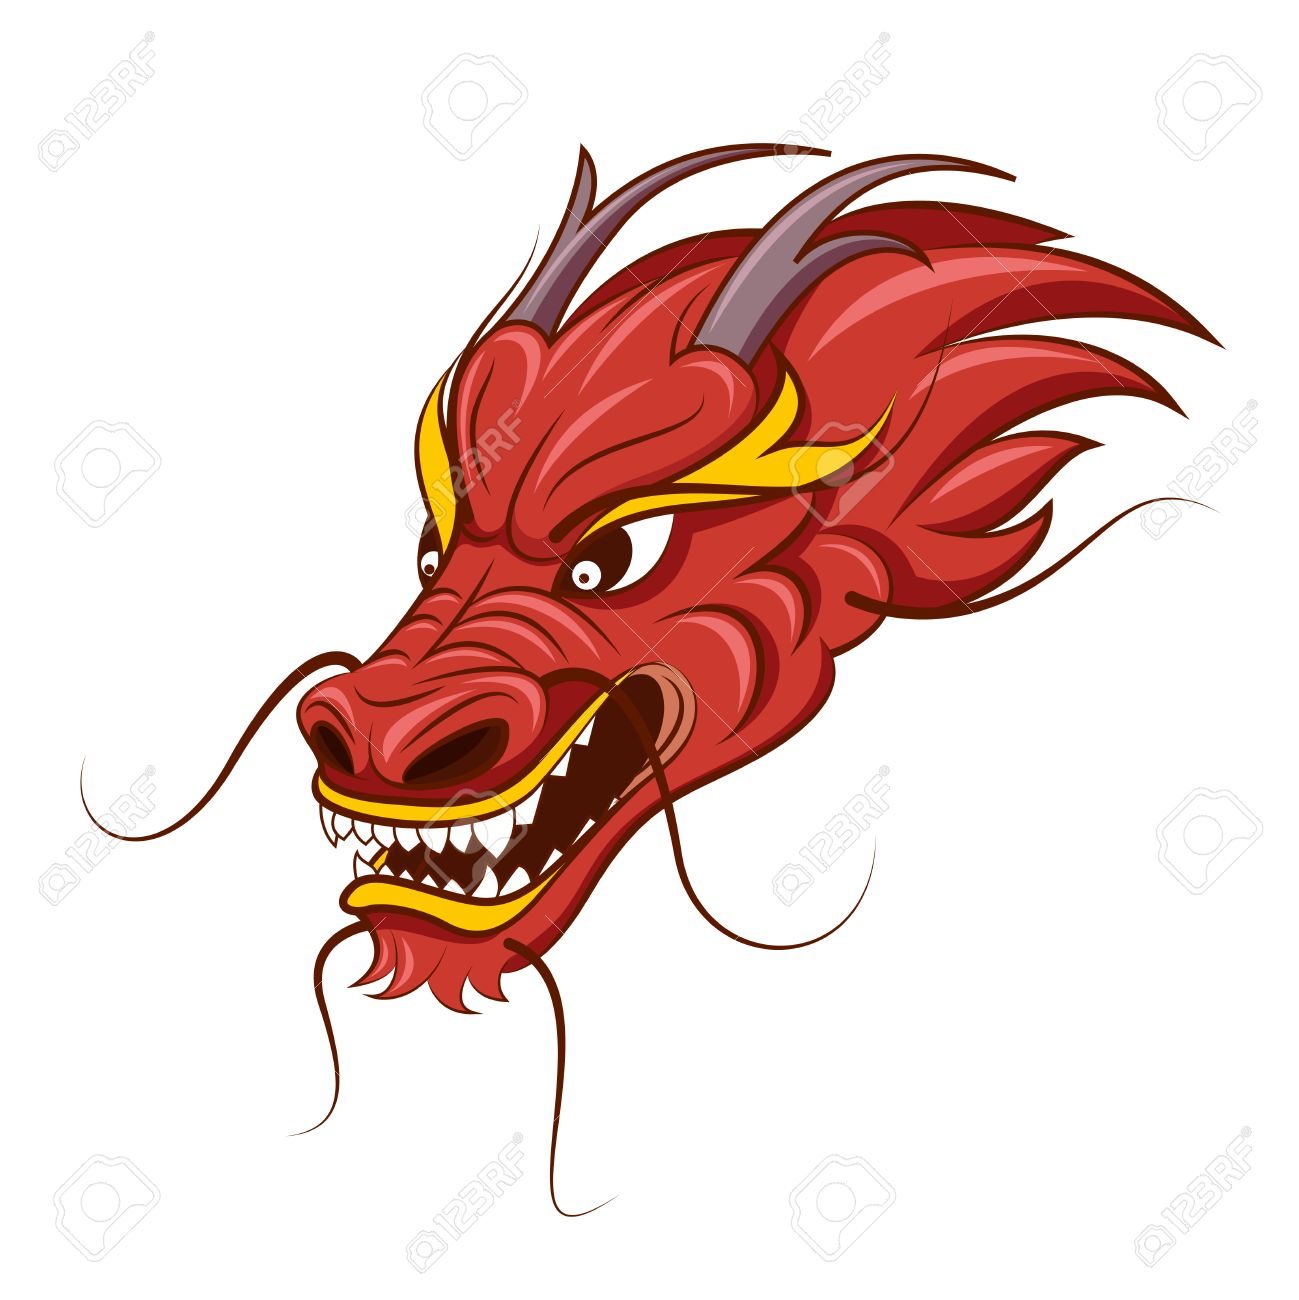 chinese dragon face drawing at getdrawings com free for personal